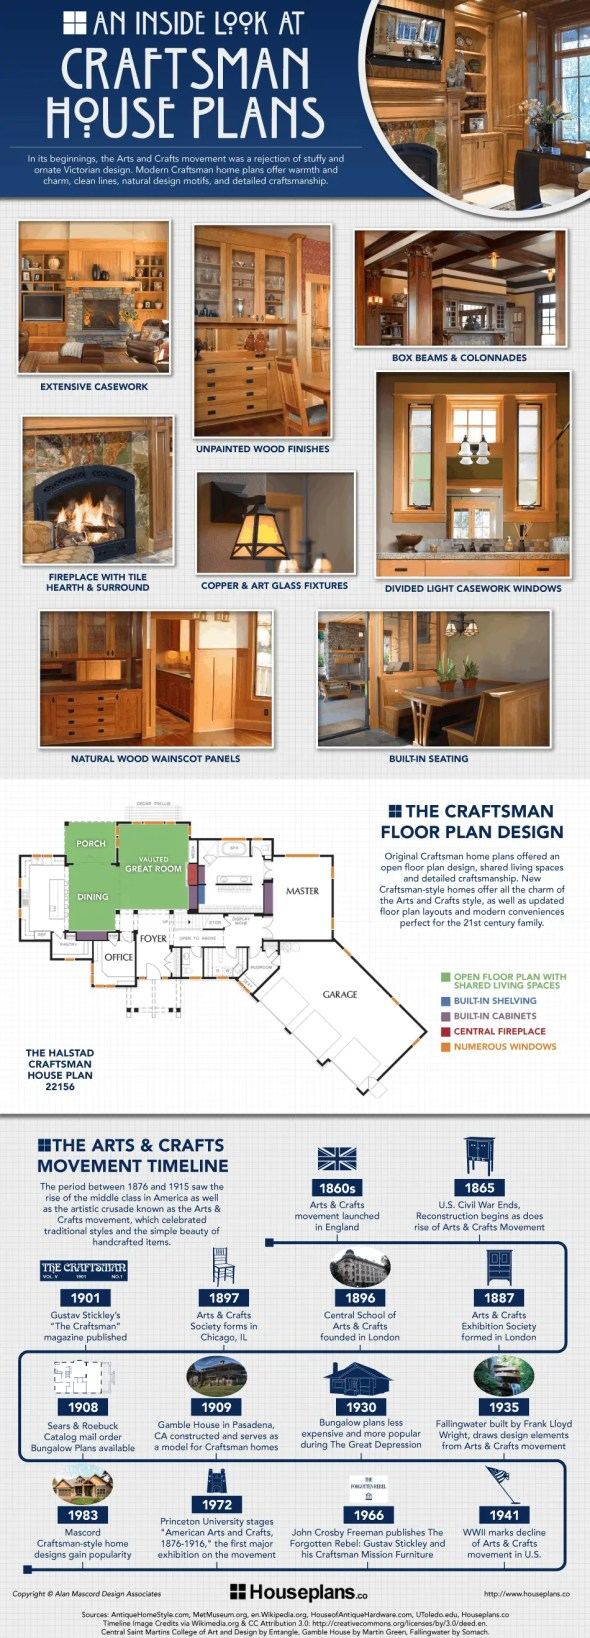 Infographic: An Inside Look at Craftsman House Plans